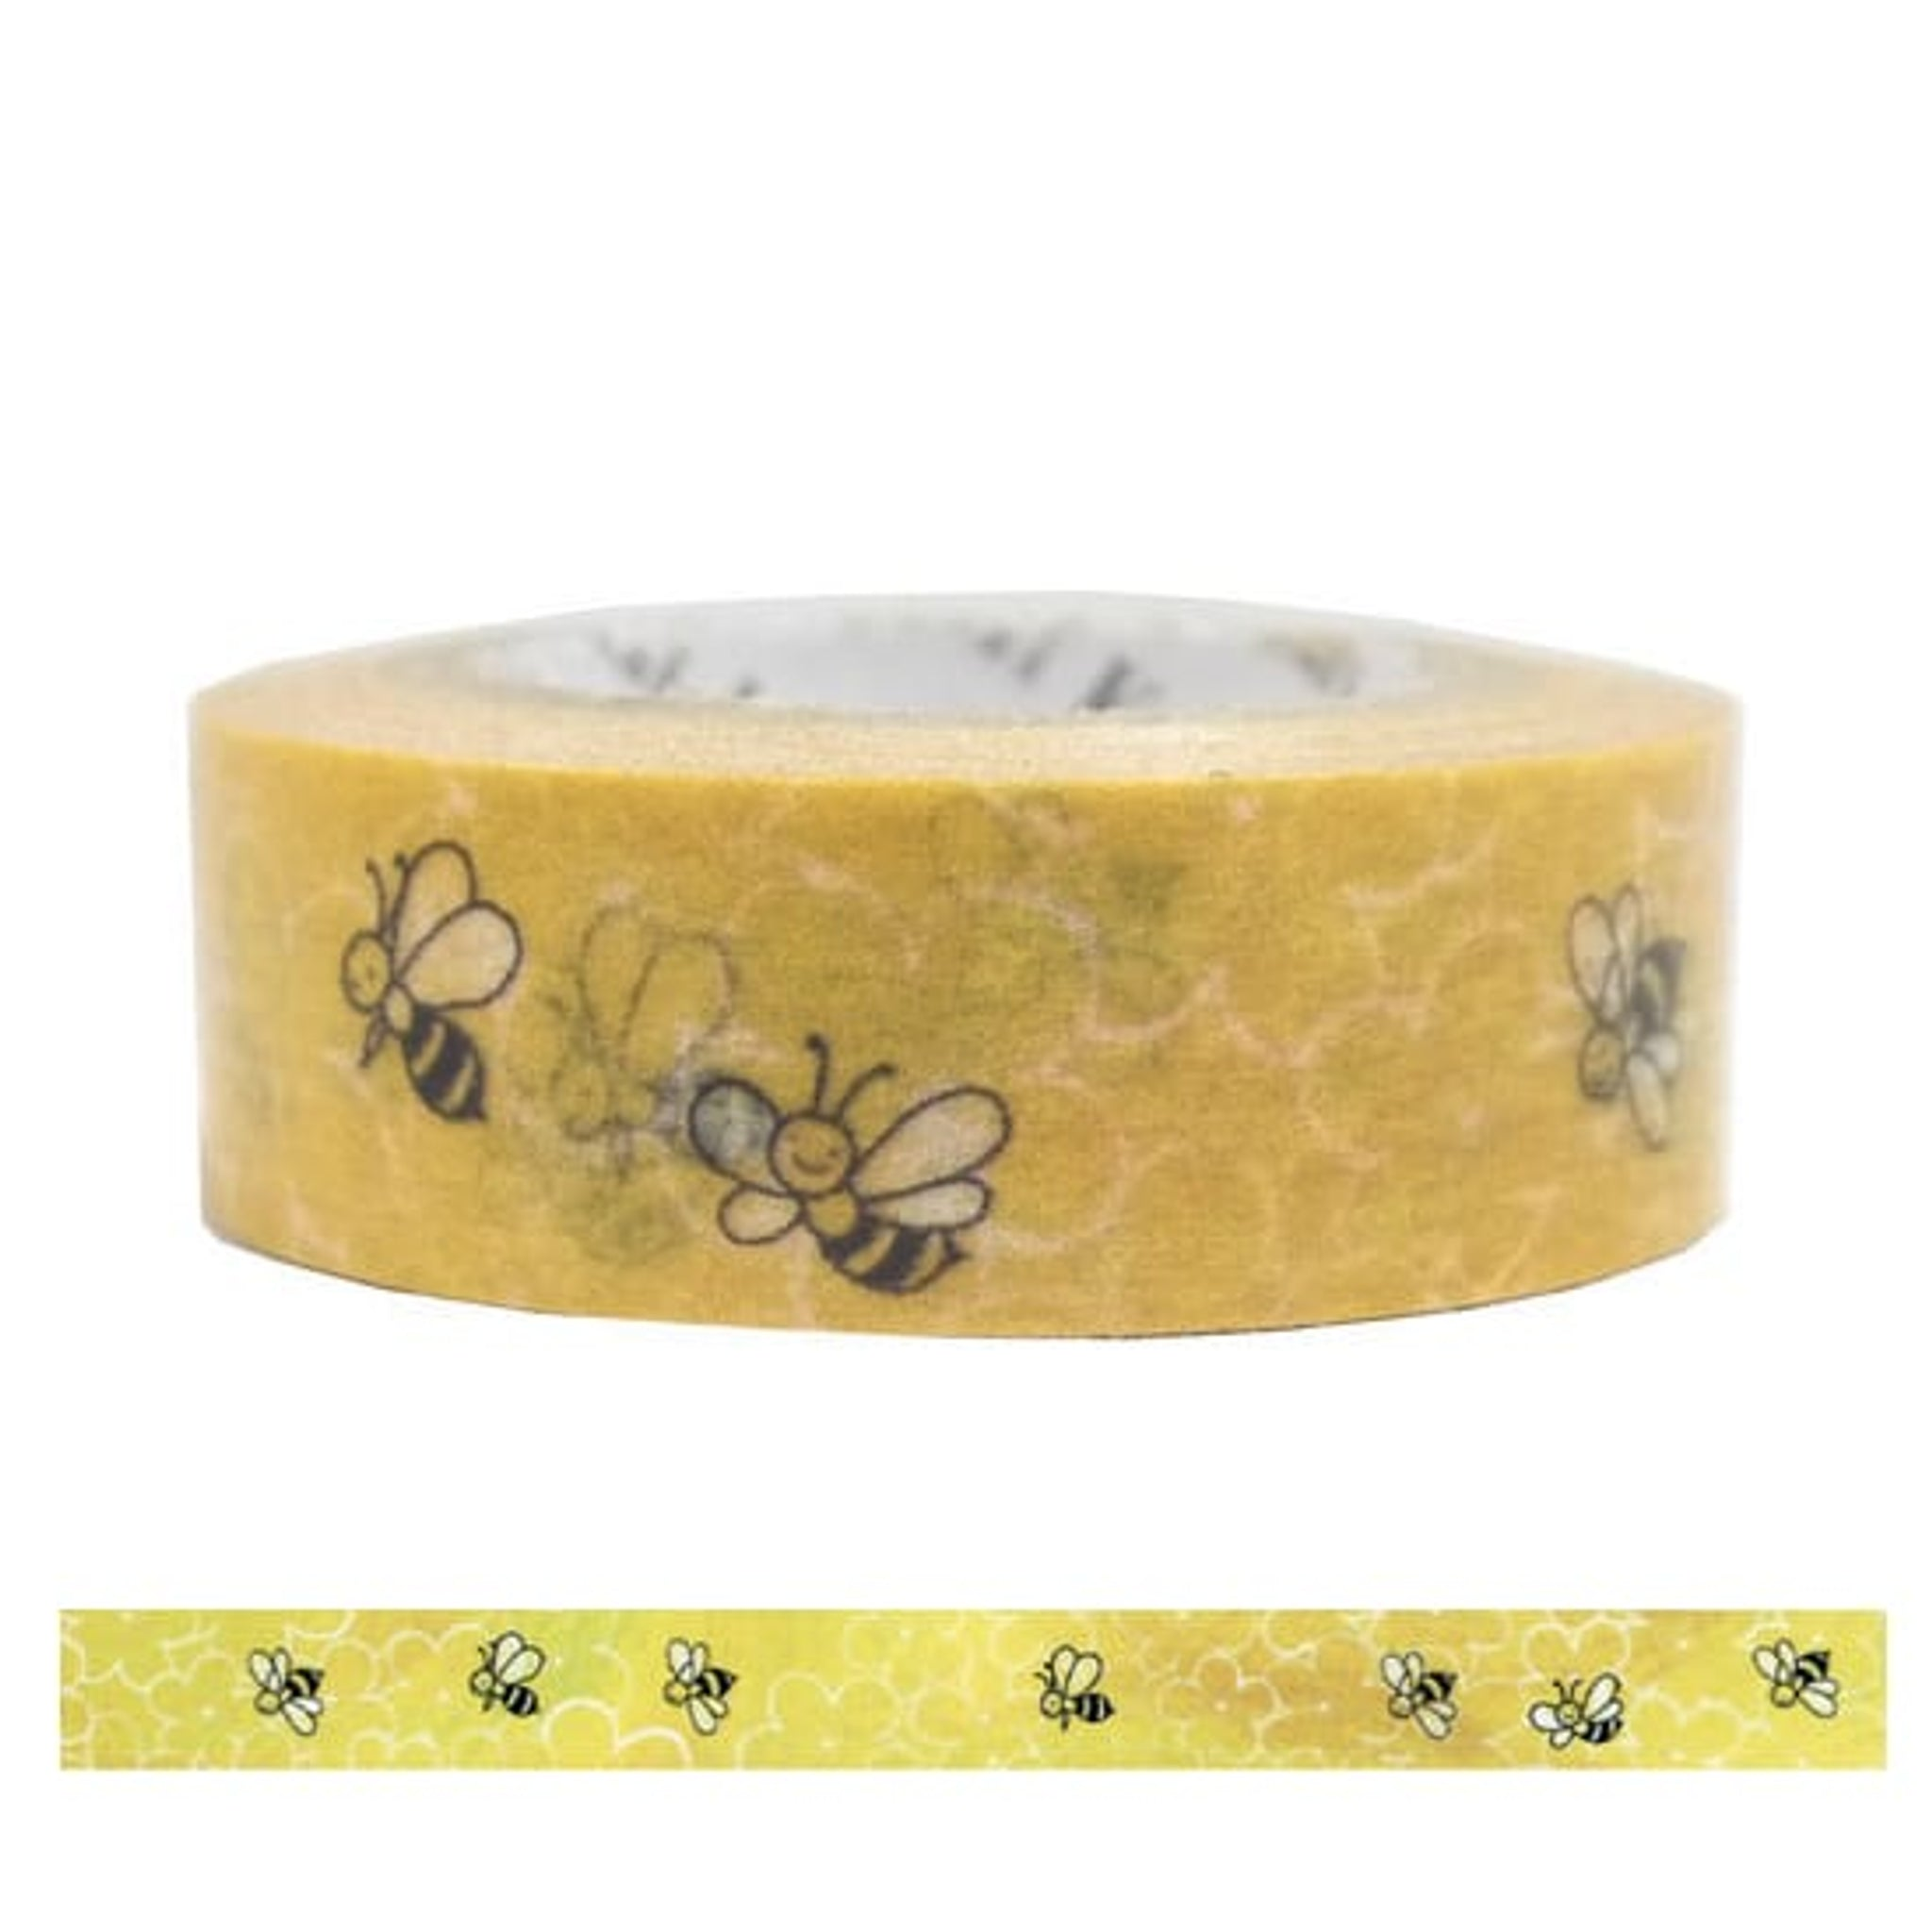 Shinzi Katoh Washi Tape Honeybee